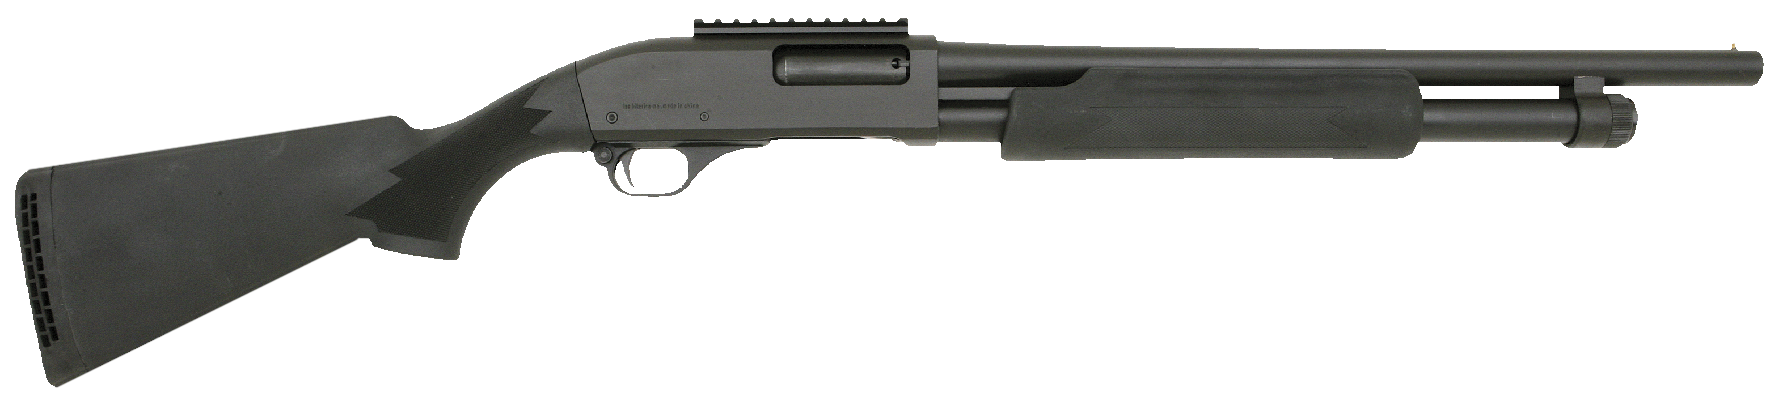 Interstate Arms 981R Hawk w/Rail Pump 12ga 18.5